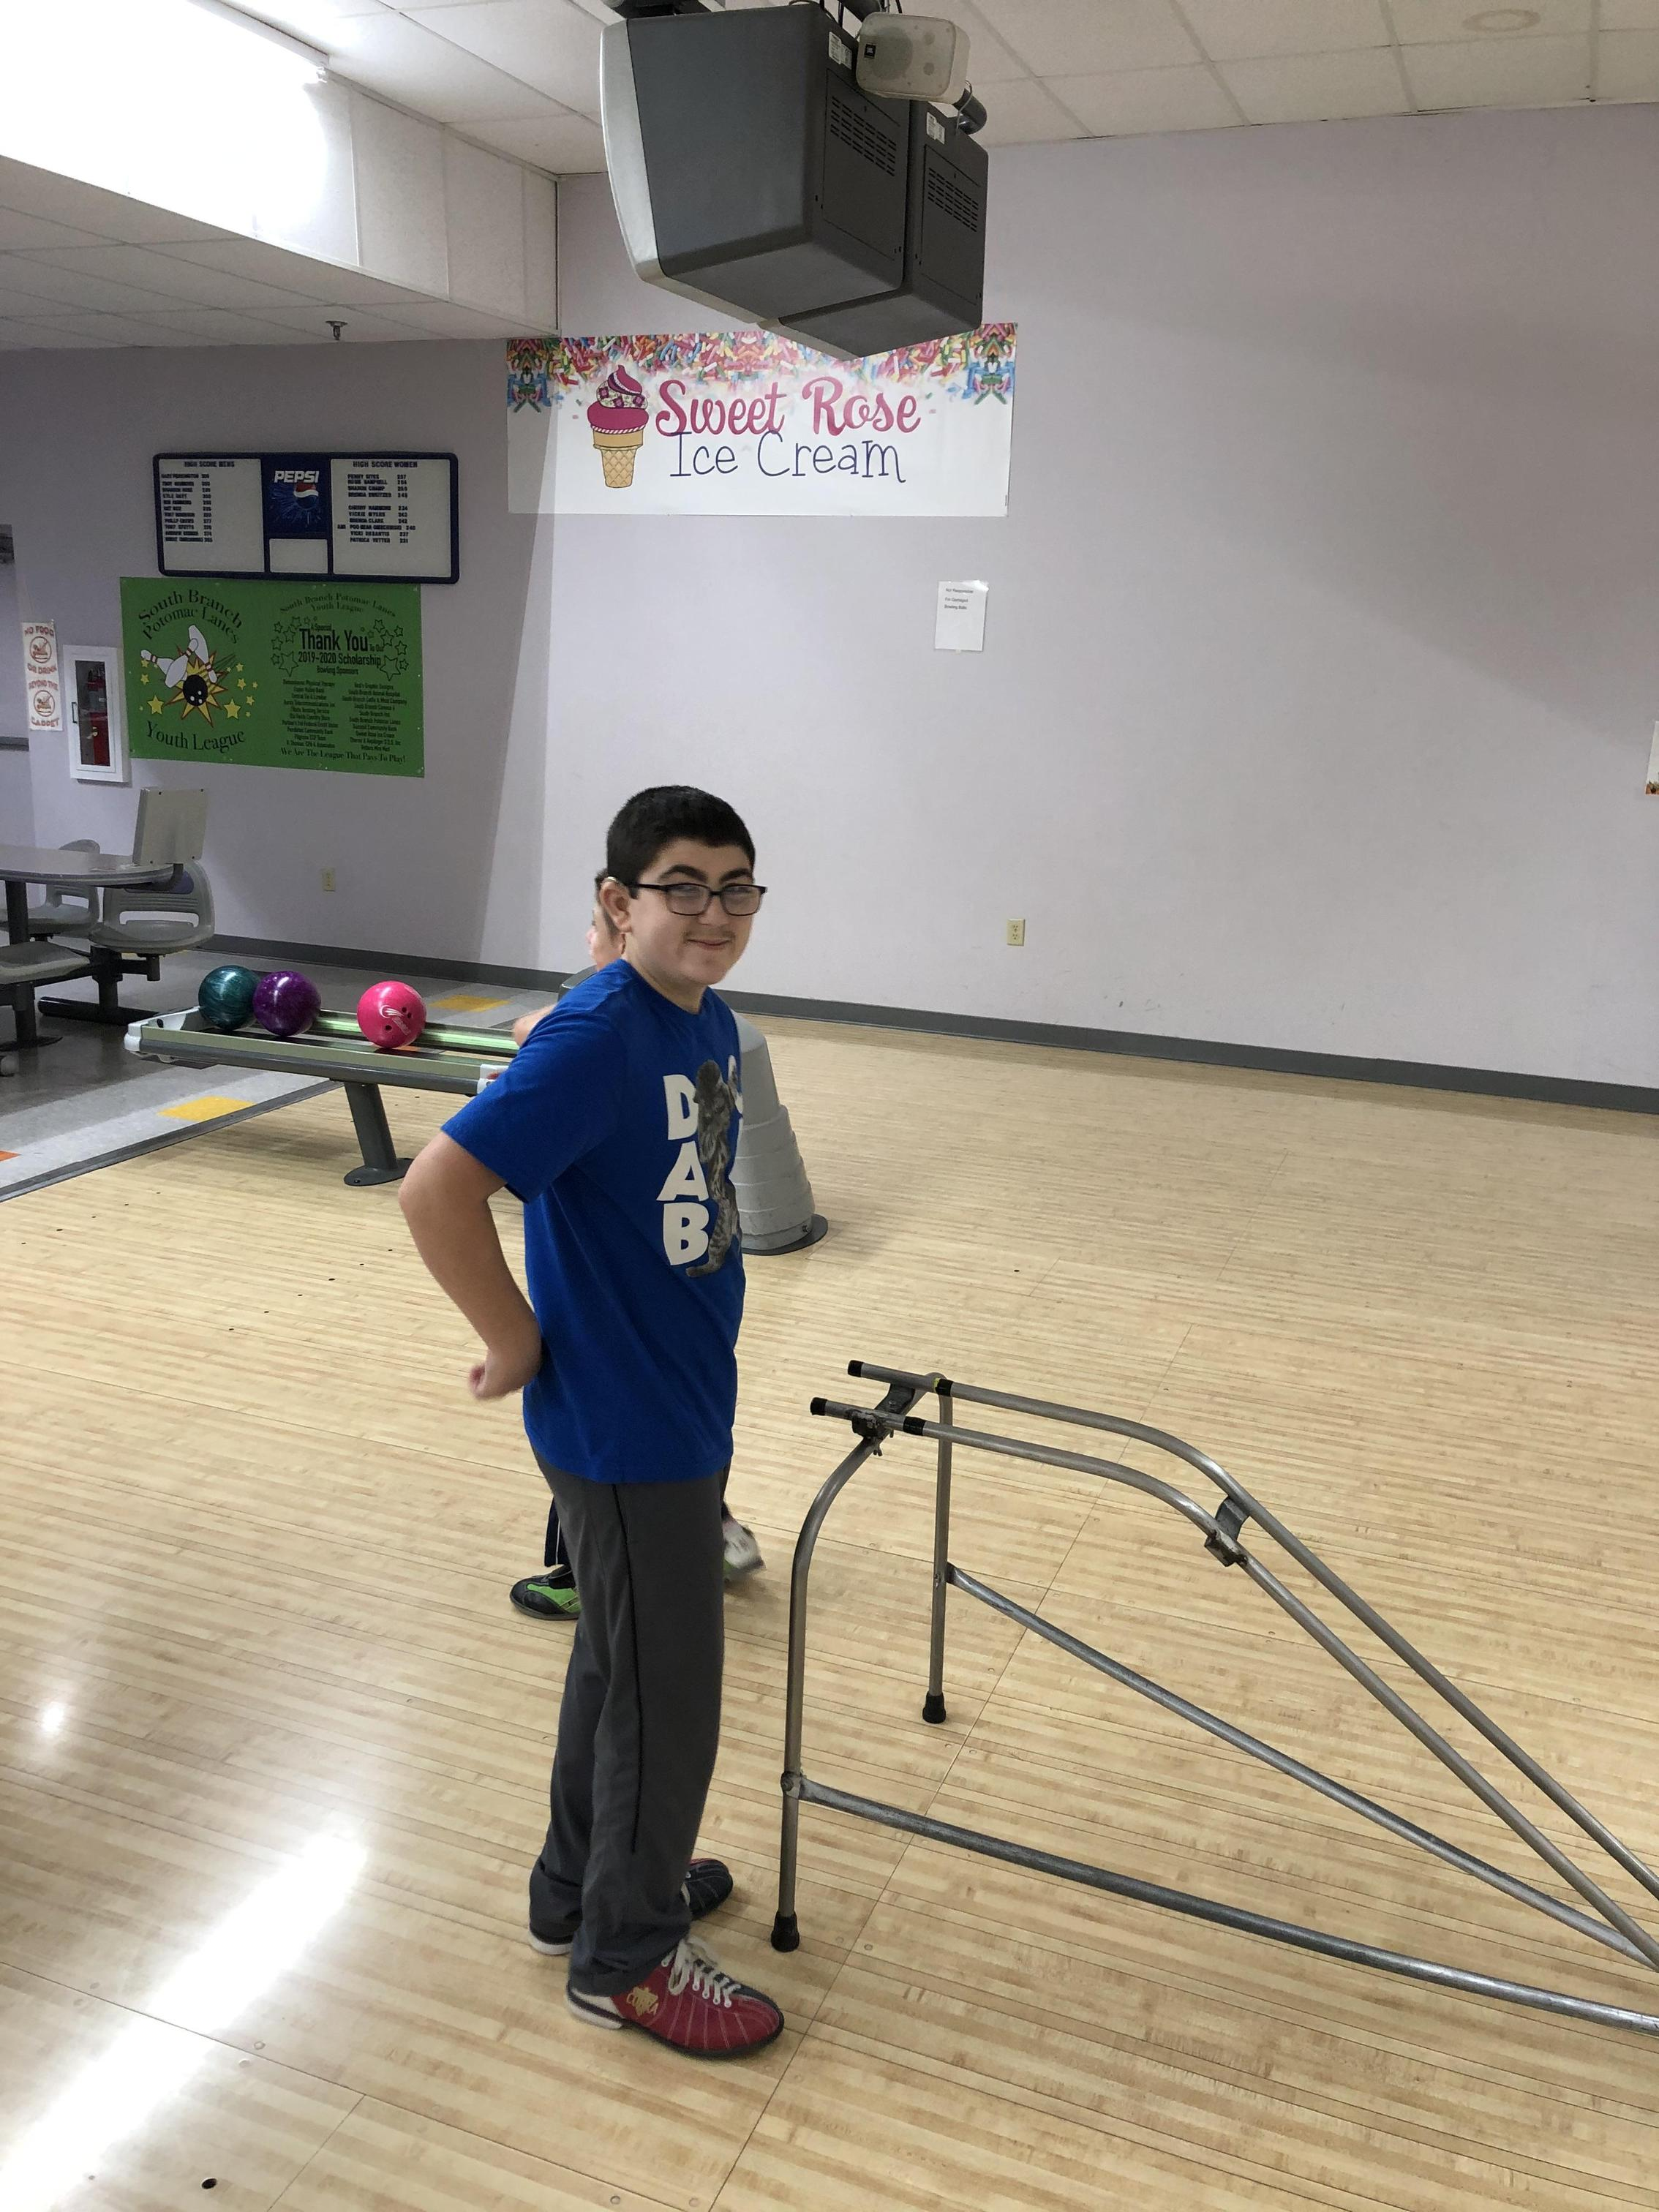 Student standing by a Bowling Ball Ramp to take his shot